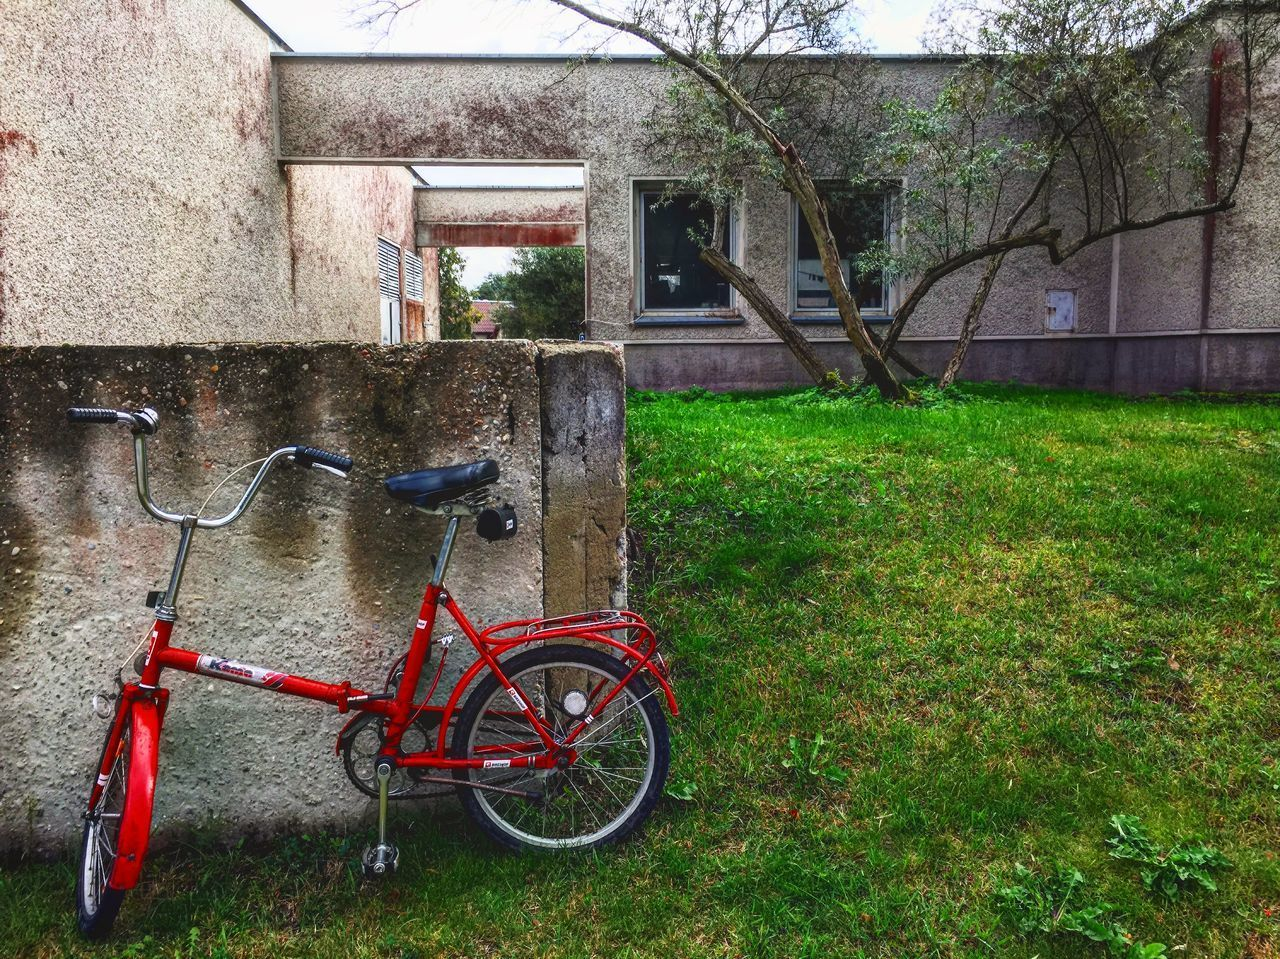 BICYCLE ON FIELD BY HOUSE